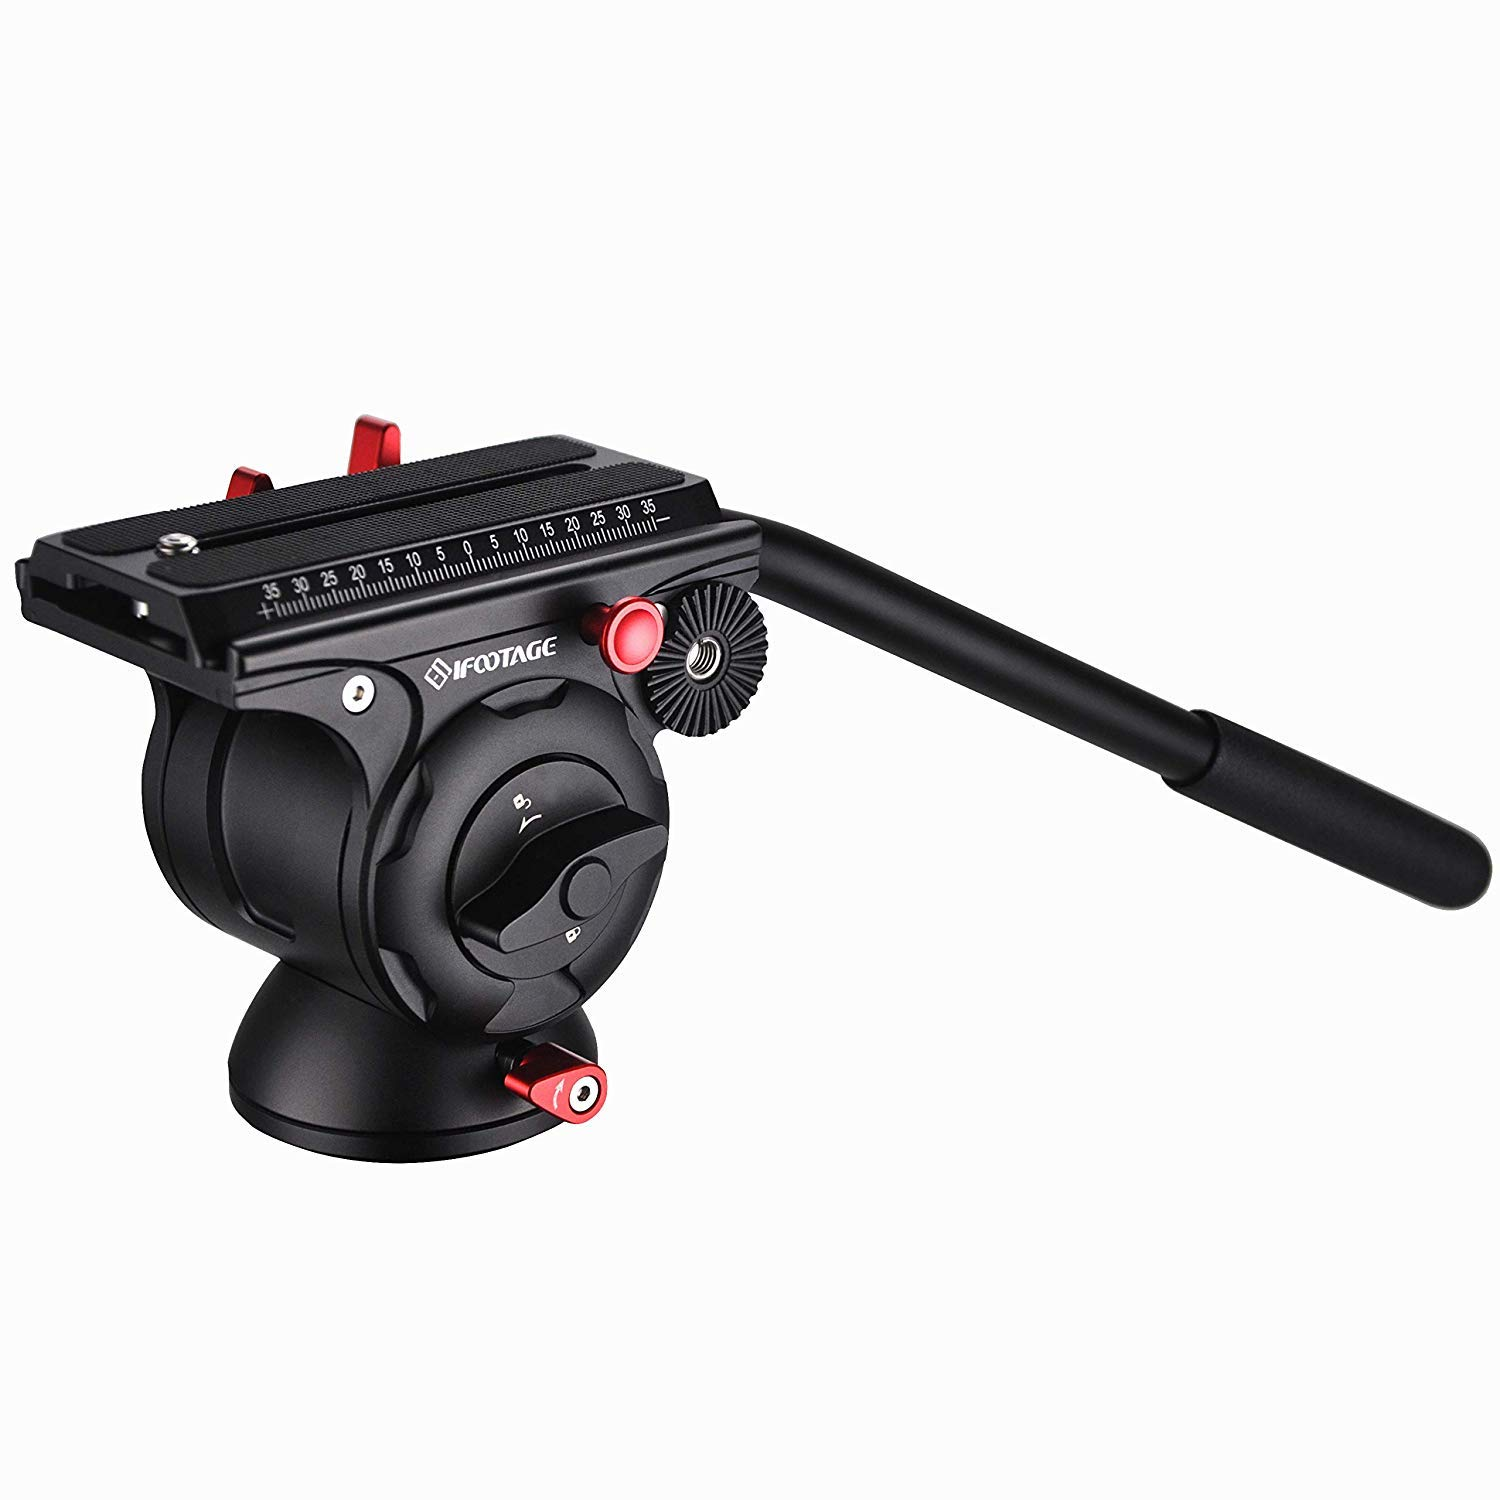 IFOOTAGE Video Tripod Head Fluid Drag Pan Head for DSLR Cameras, Camcorder, Monopod and Tripods